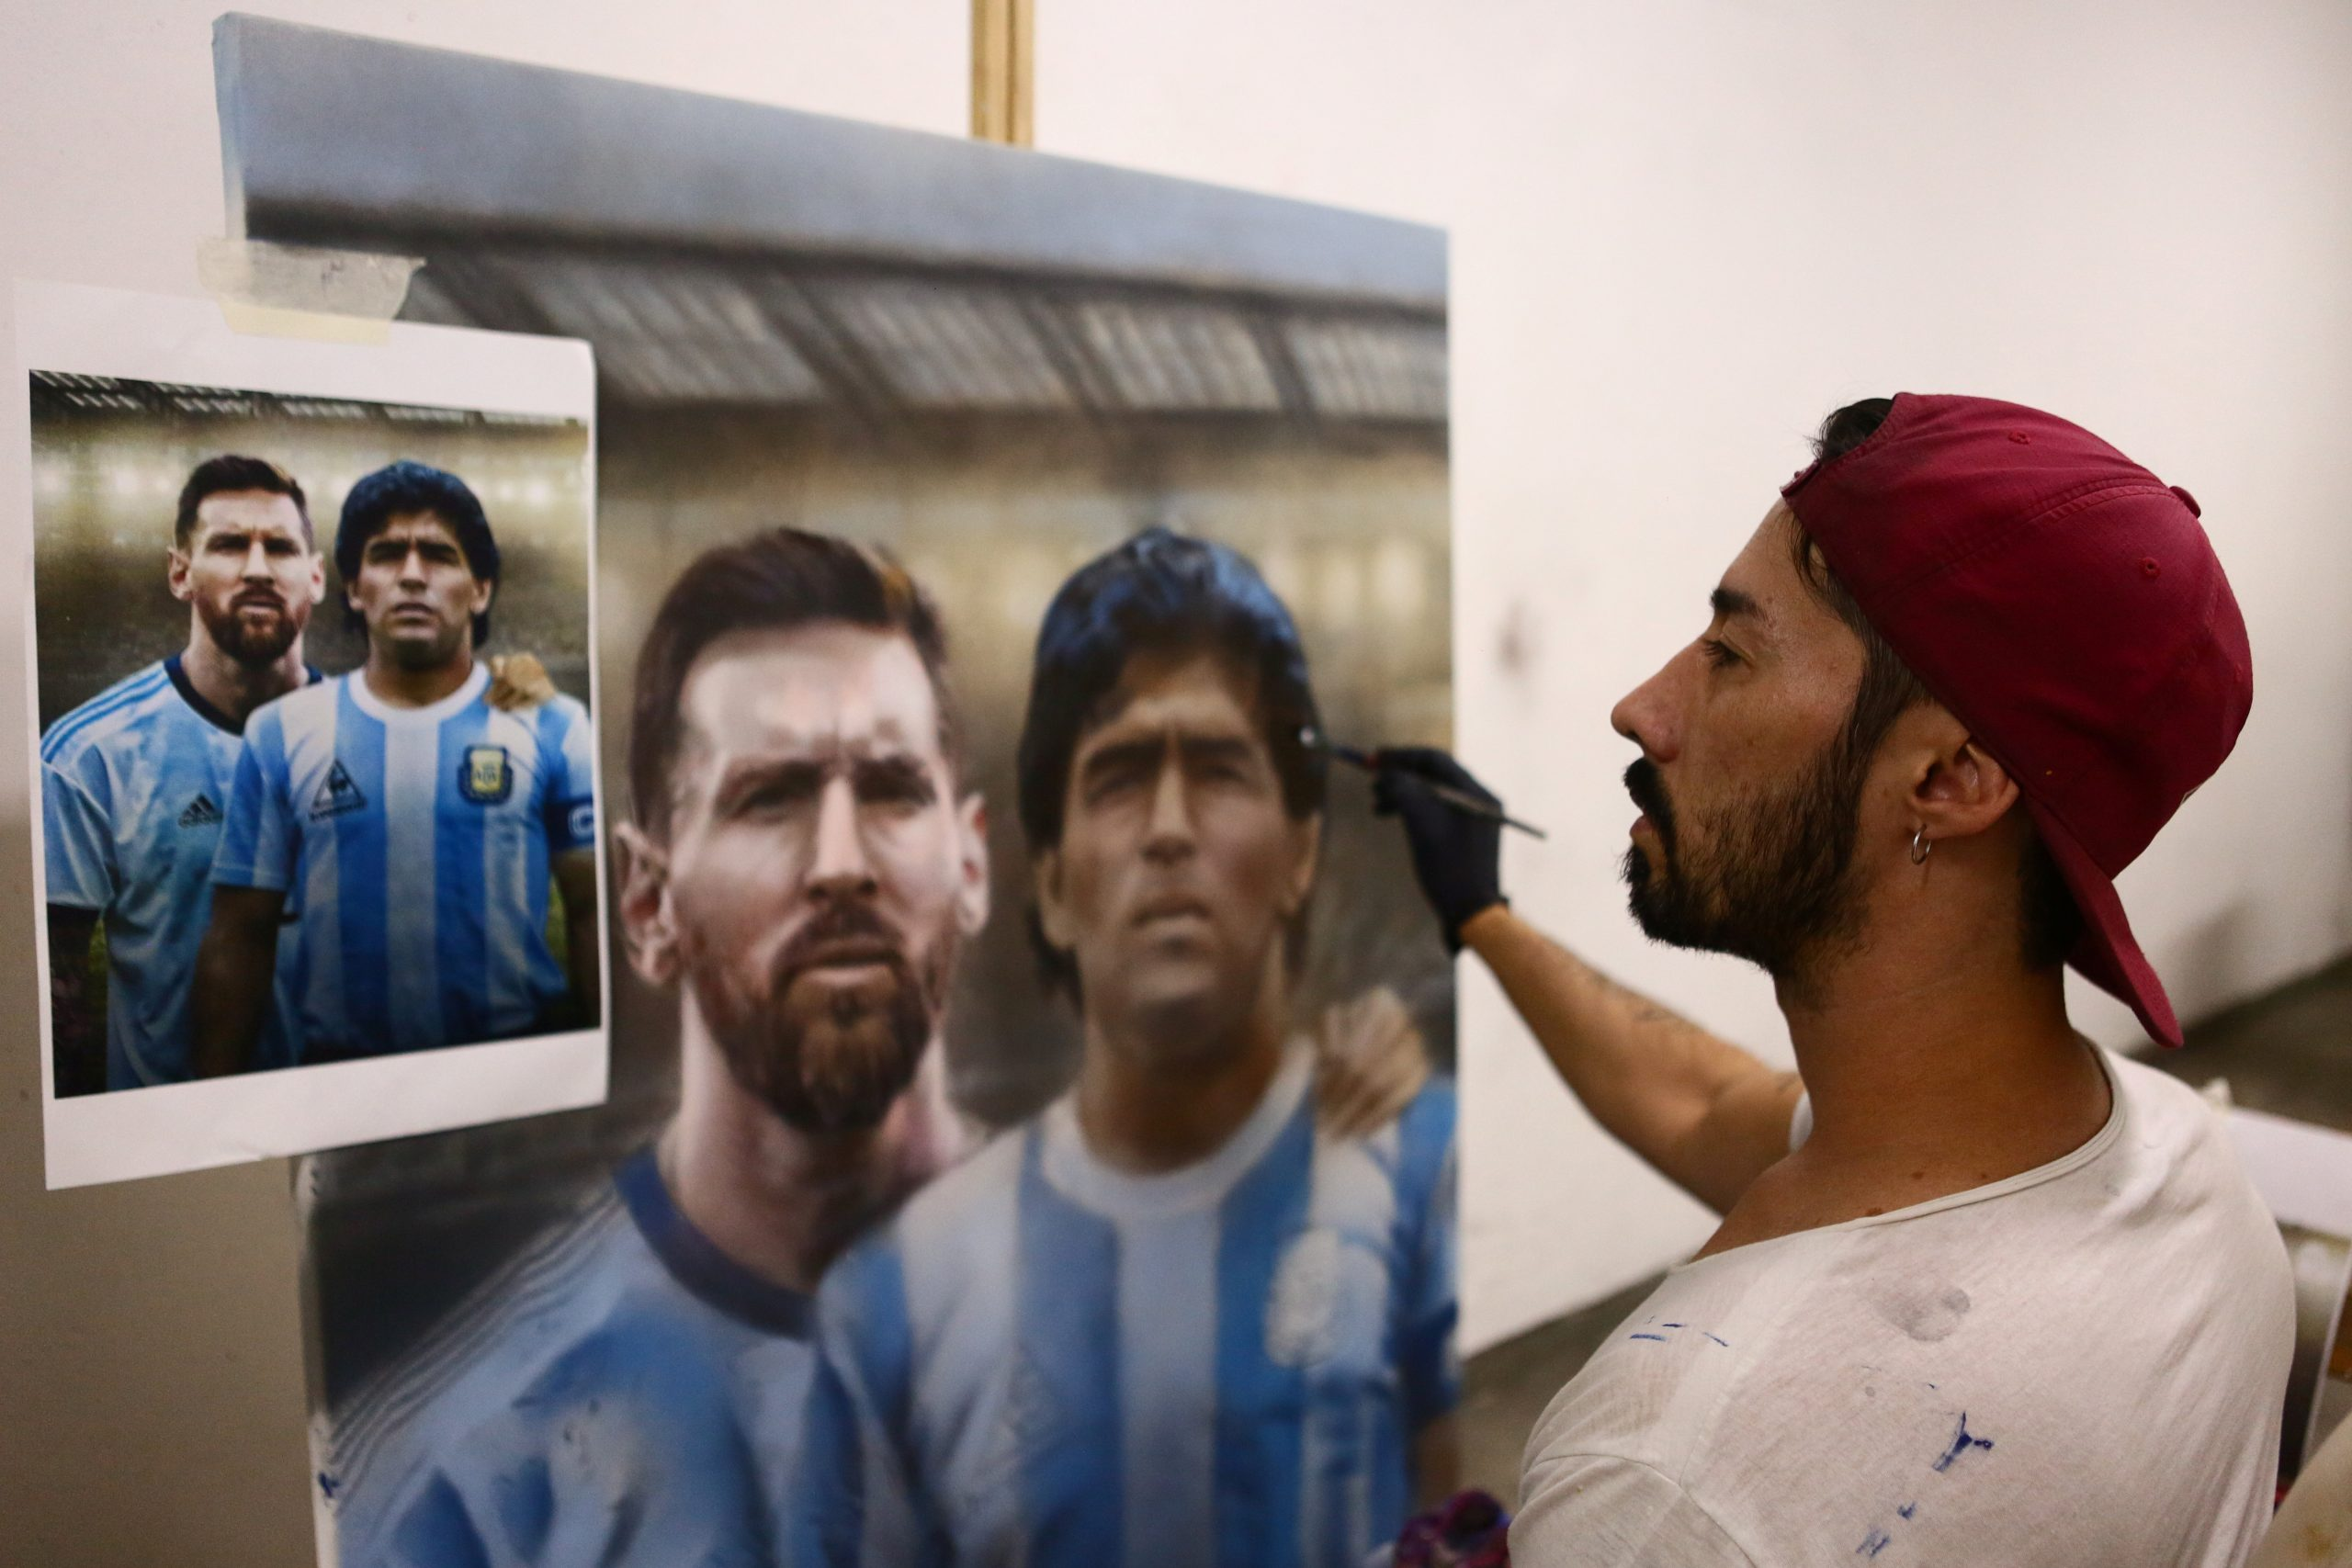 Pedestrians take a picture next to paintings made by Argentine artist Maximiliano Bagnasco of soccer legend Diego Armando Maradona, in Buenos Aires, Argentina April 14, 2021. Picture taken April 14, 2021. REUTERS/Matias Baglietto